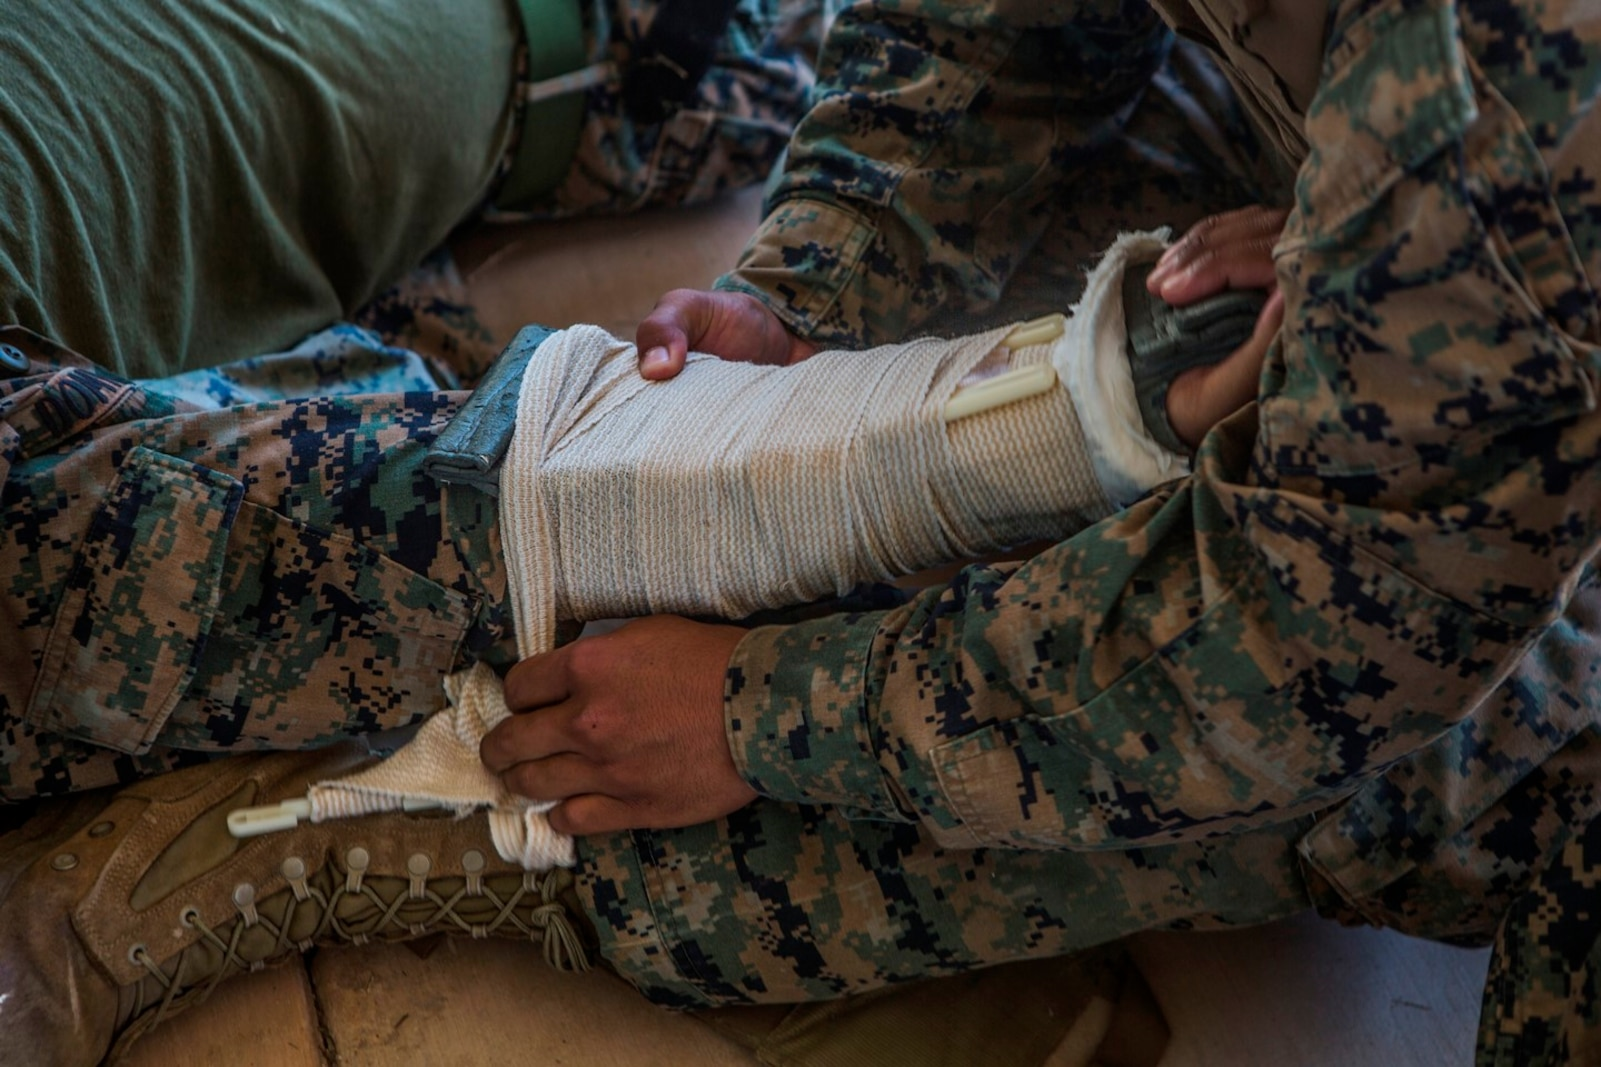 CAMP PENDLETON, Calif. – U.S. Marine Pfc. Mitchell Manuel, a field radio operator with Transportation Service Company, Combat Logistics Battalion 1, Combat Logistics Regiment 1, 1st Marine Logistics Group, wraps a splint around a casualty during the practical application portion of a combat lifesaver course July 22, 2017. CLS trains Marines and Sailors on the necessary skills to assess and treat casualties in a combat environment. (U.S. Marine Corps Photo by Lance Cpl. Joseph Sorci)